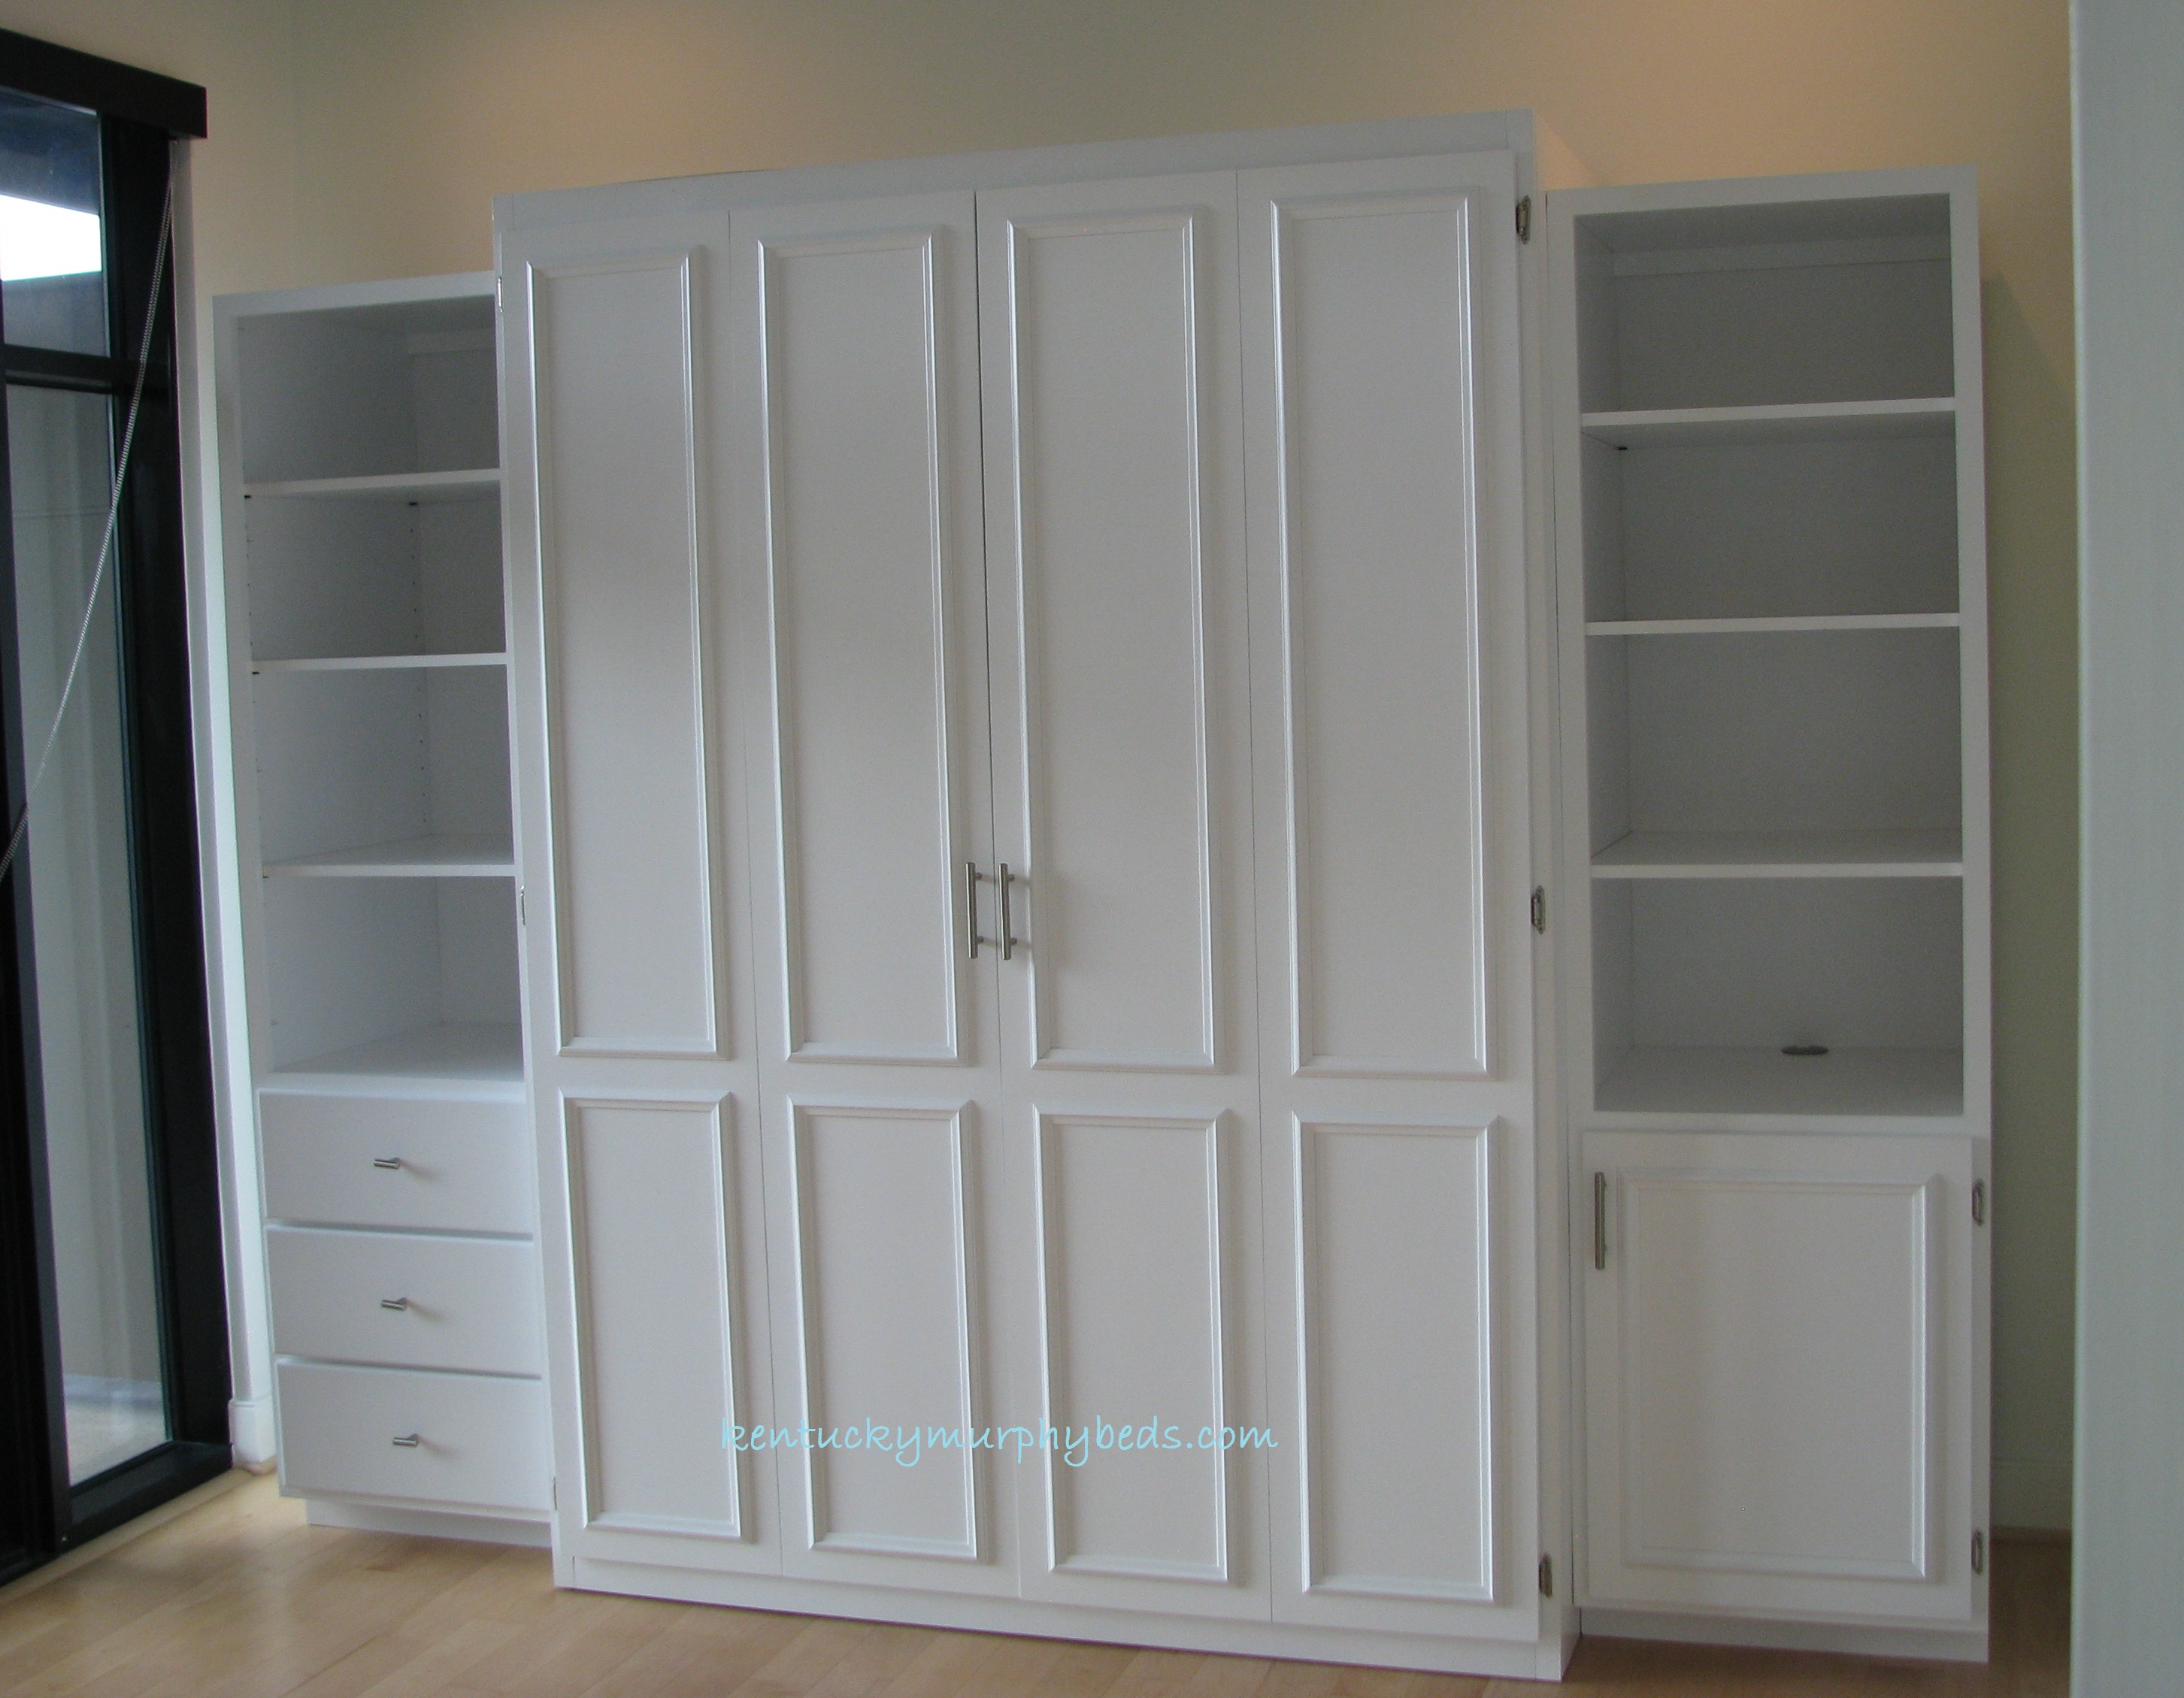 Stylish Queen Murphy Bed Architecture Home Gallery Image